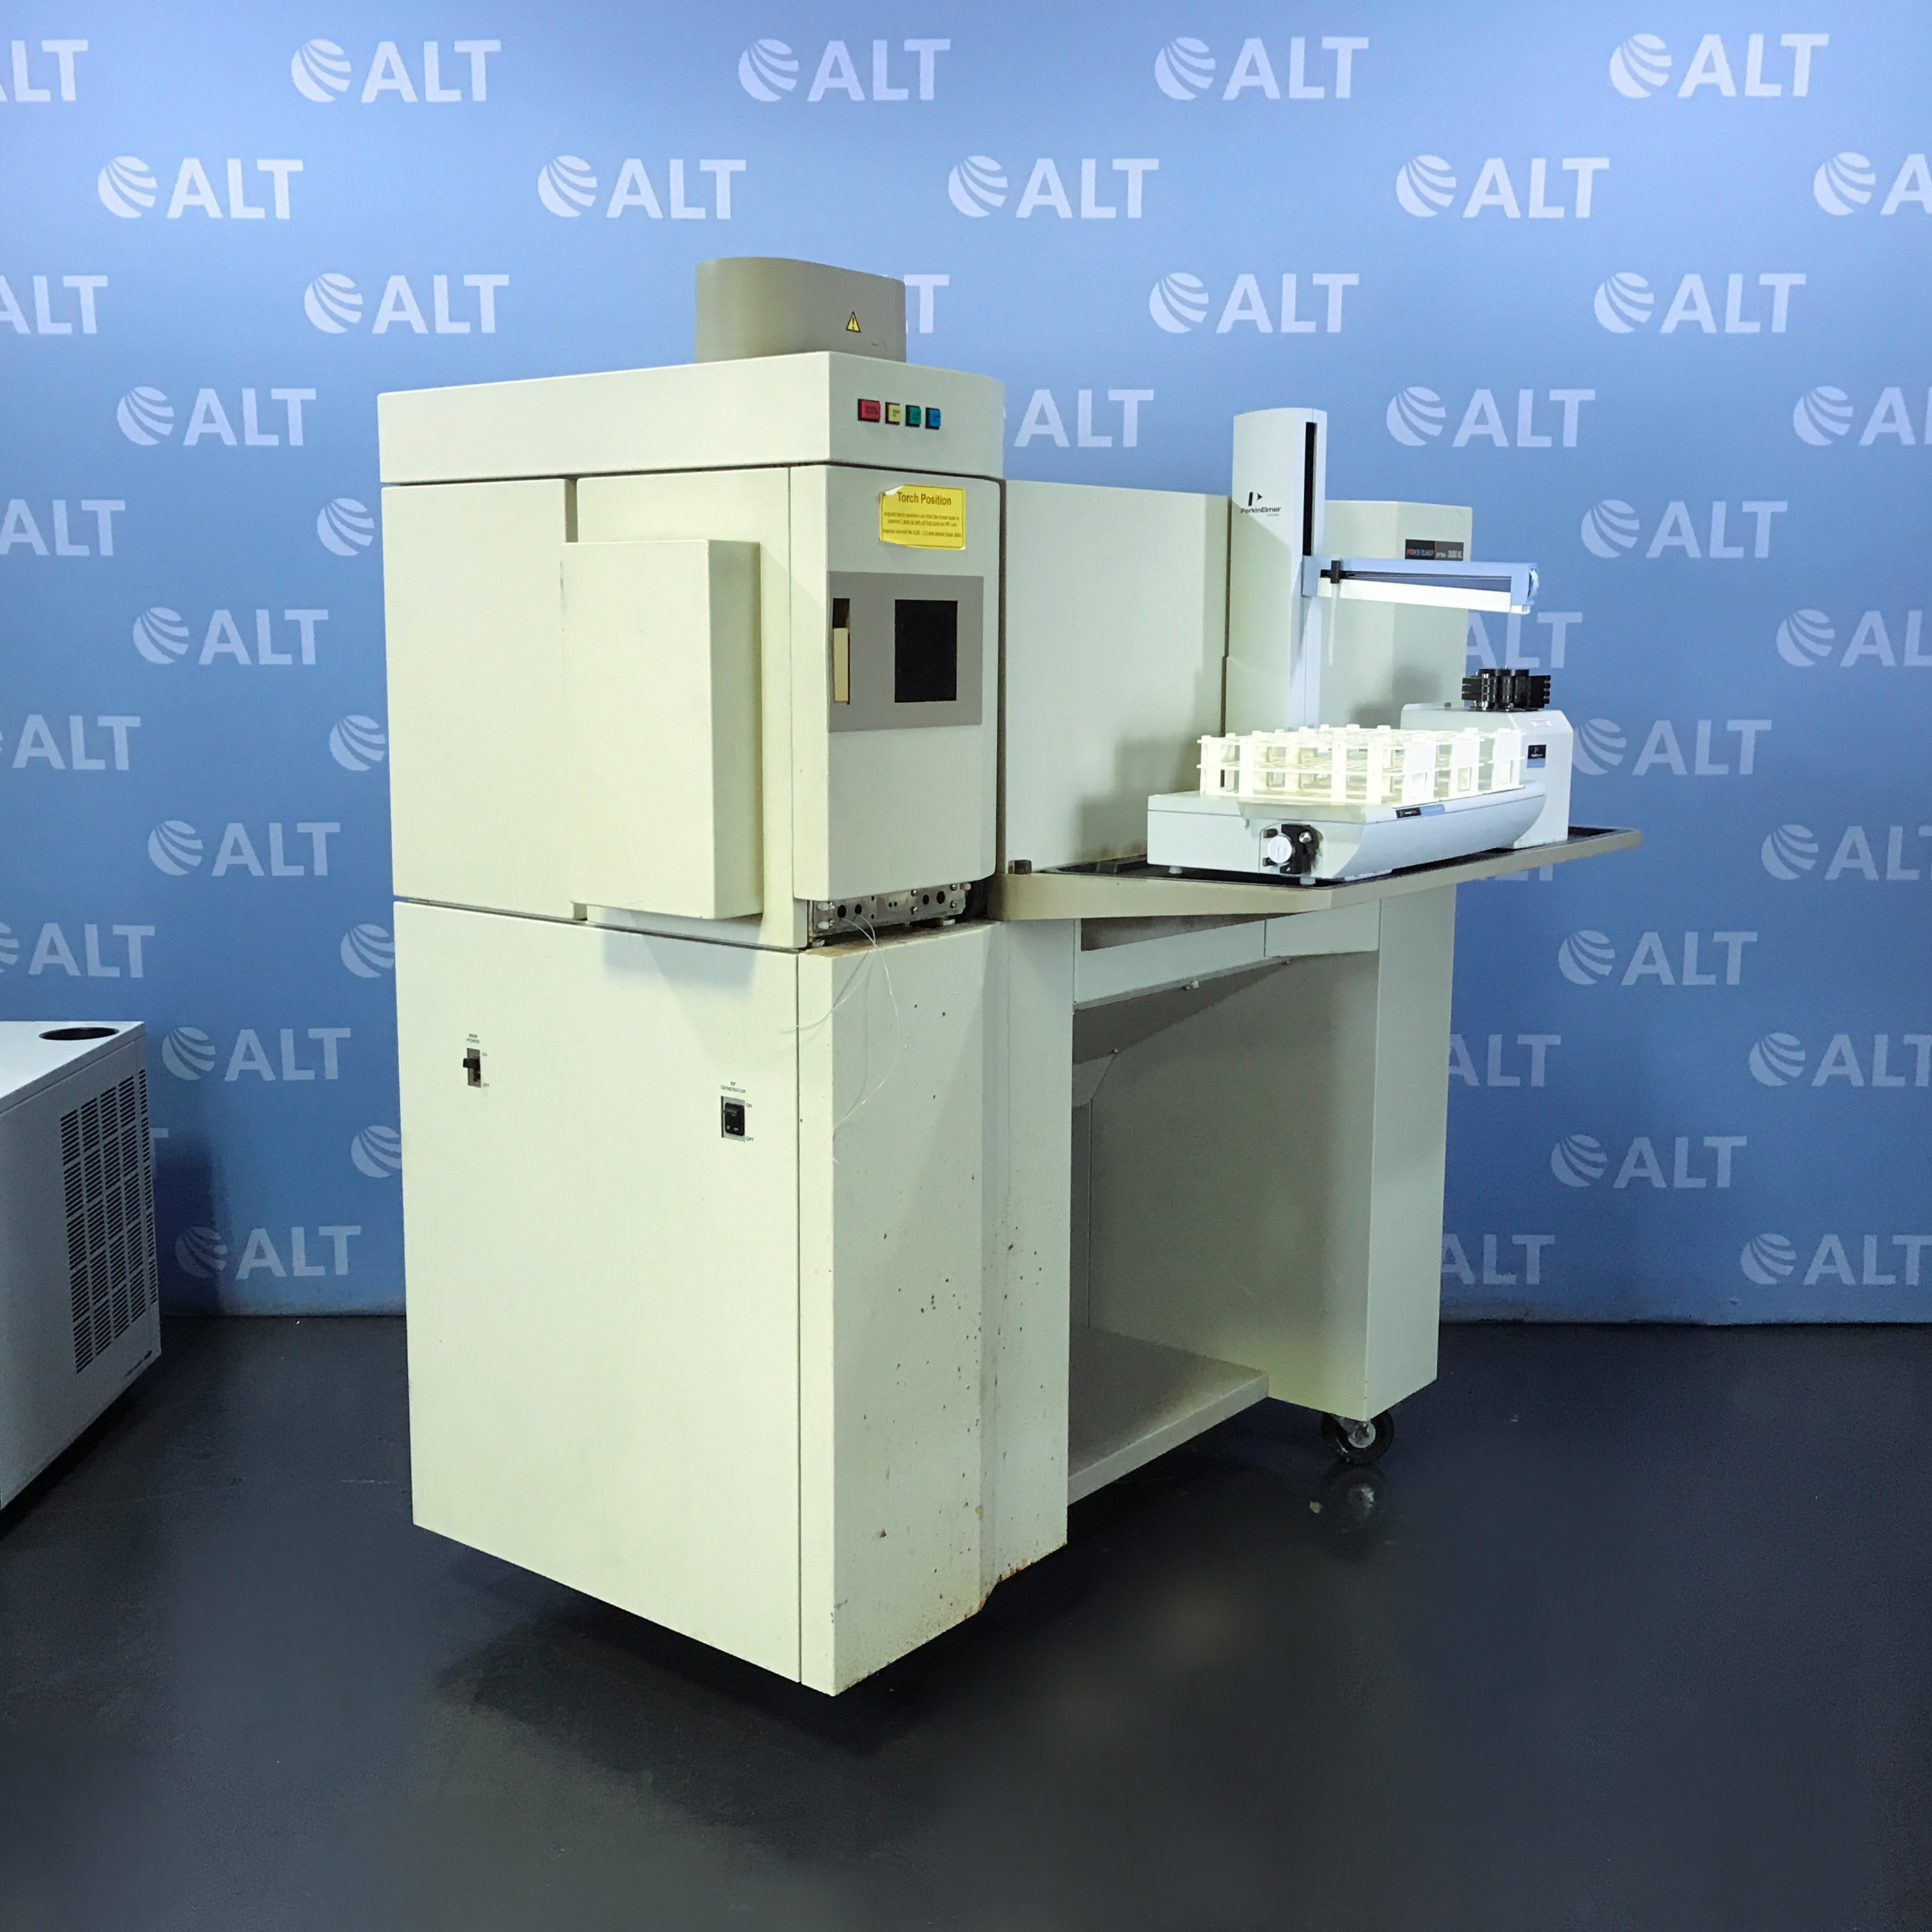 PerkinElmer Optima 3000 XL ICP-OES Spectrometer with Perkin Elmer S10 Autosampler Image